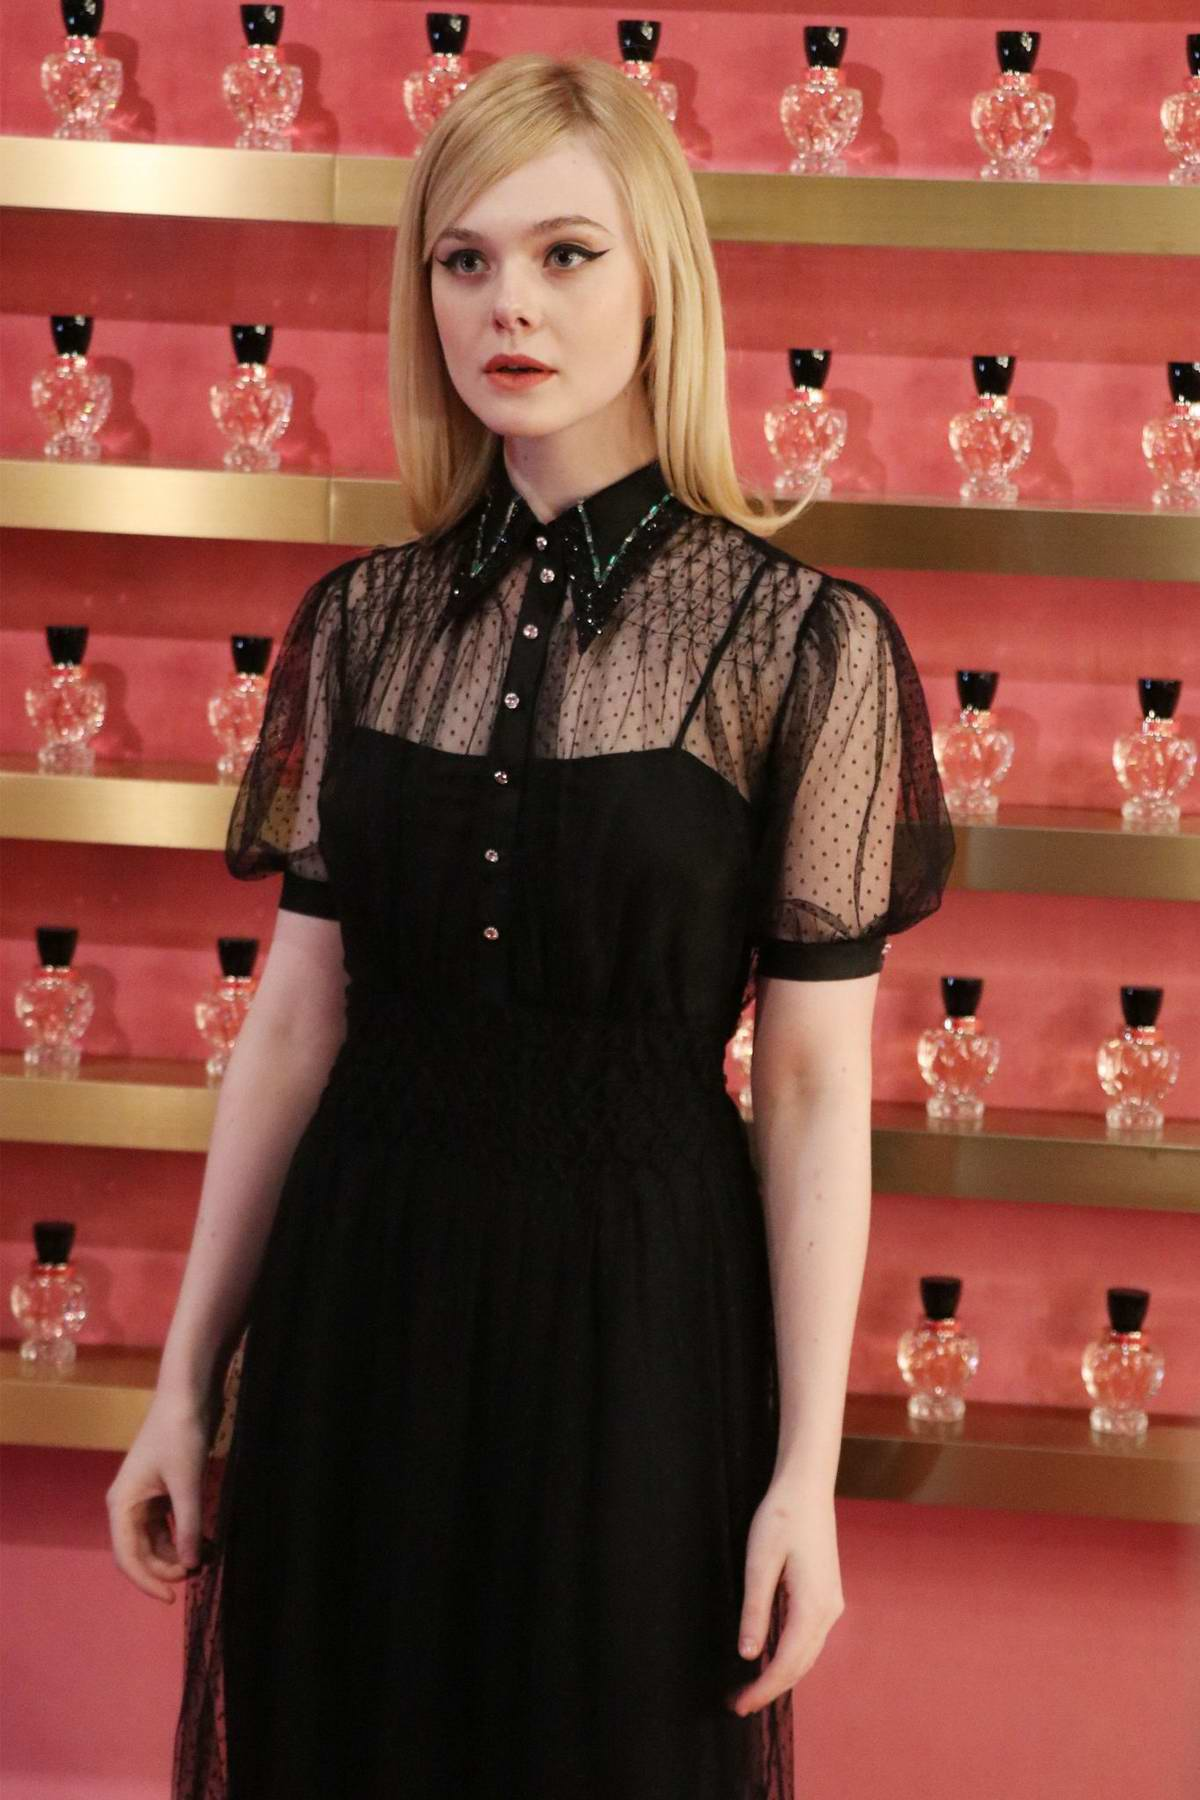 Elle Fanning attends a Miu Miu event in Shanghai, China